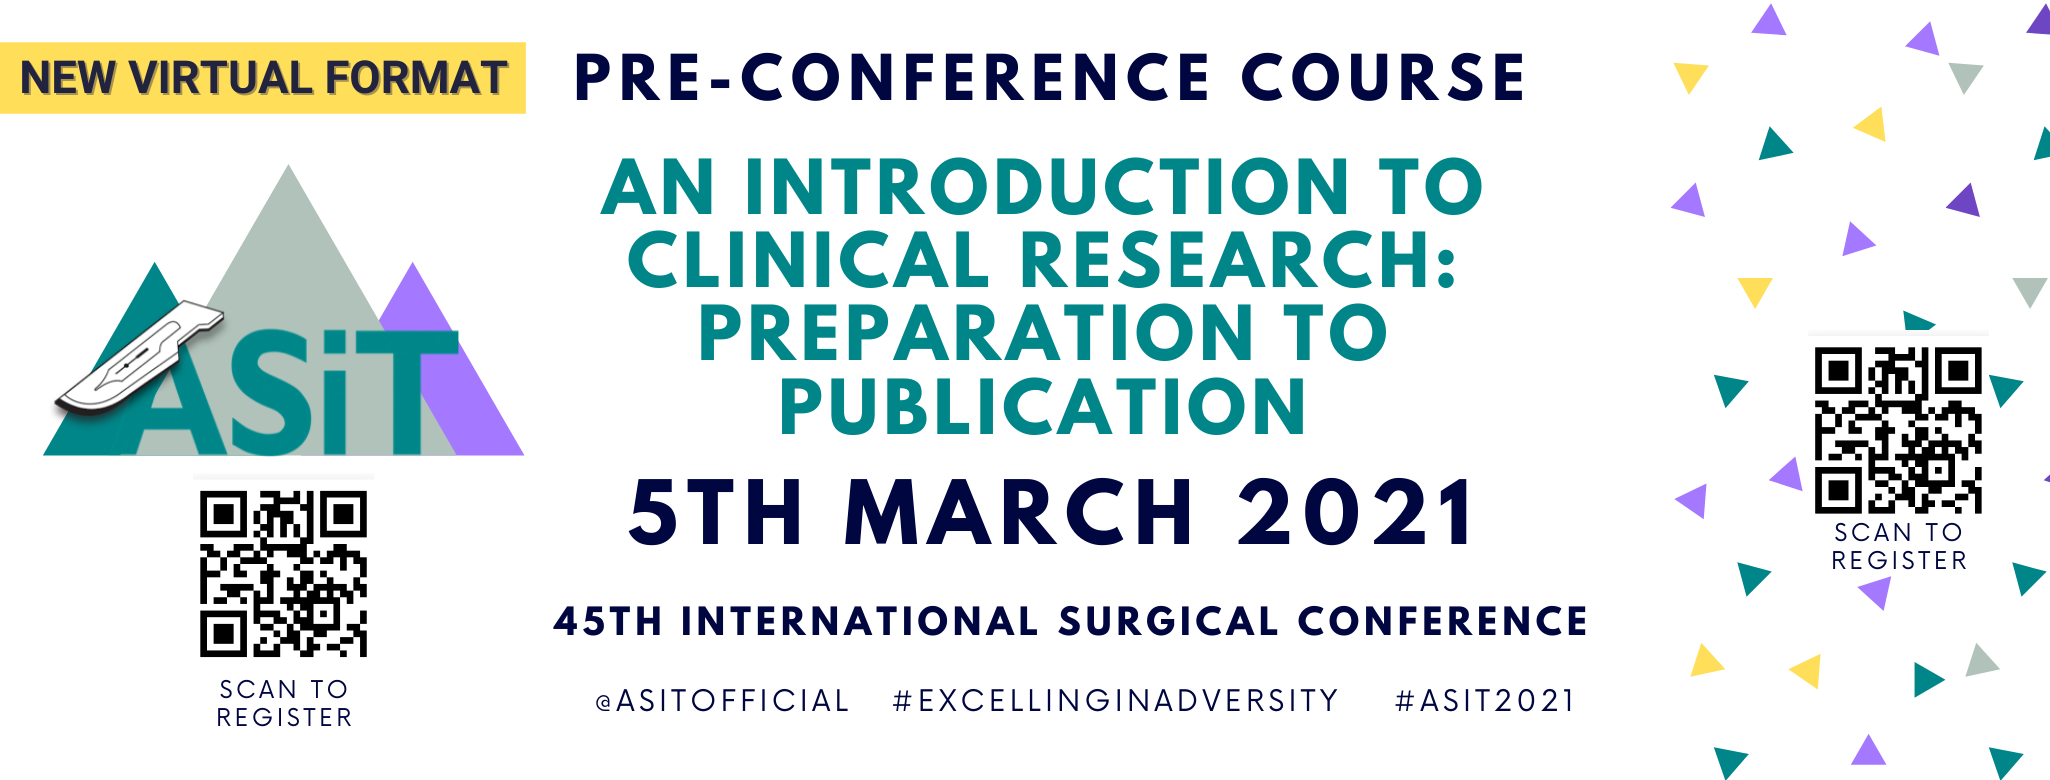 An Introduction to Clinical Research: Pre-Conference Course